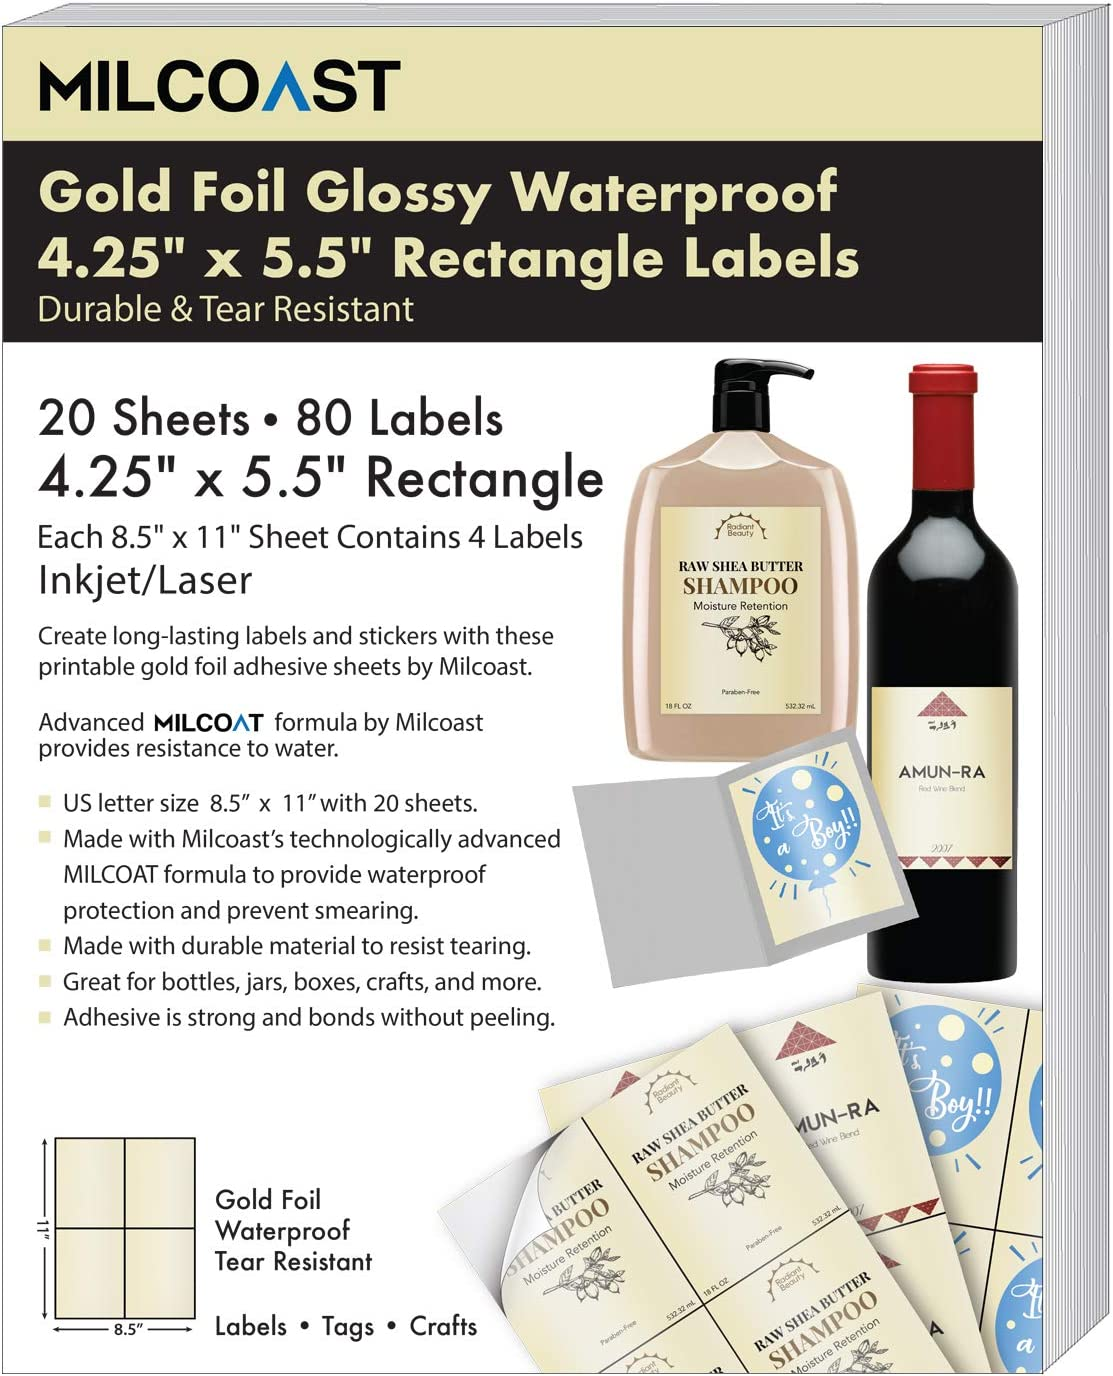 20 Sheets Milcoast Gold Foil Glossy Waterproof Tear Resistant Adhesive 4.25 x 5.5 Rectangular Labels for Inkjet//Laser Printers 80 Labels